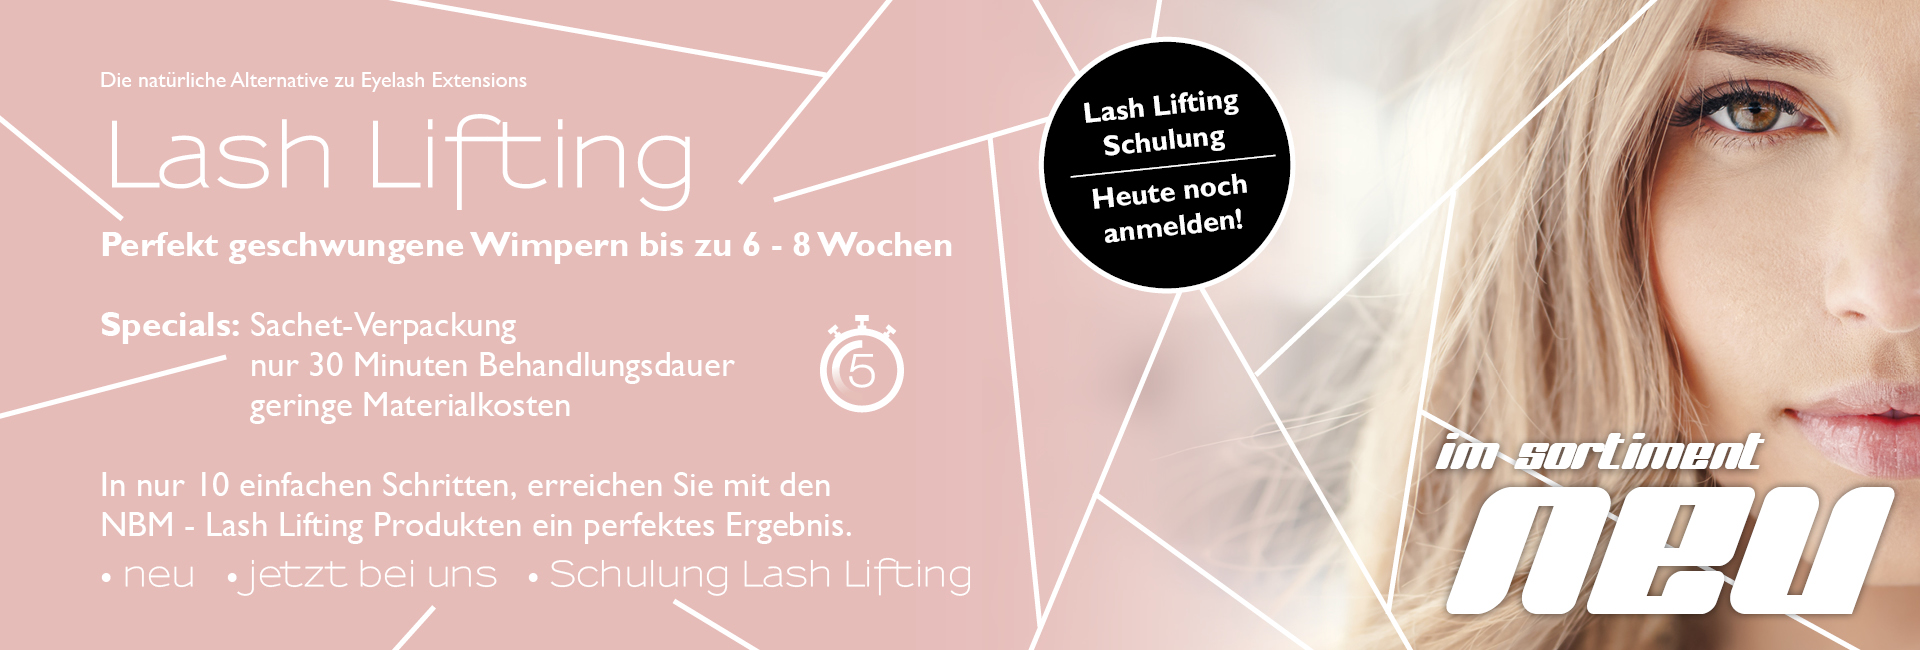 Lash Lifting_NBM Gelnhausen